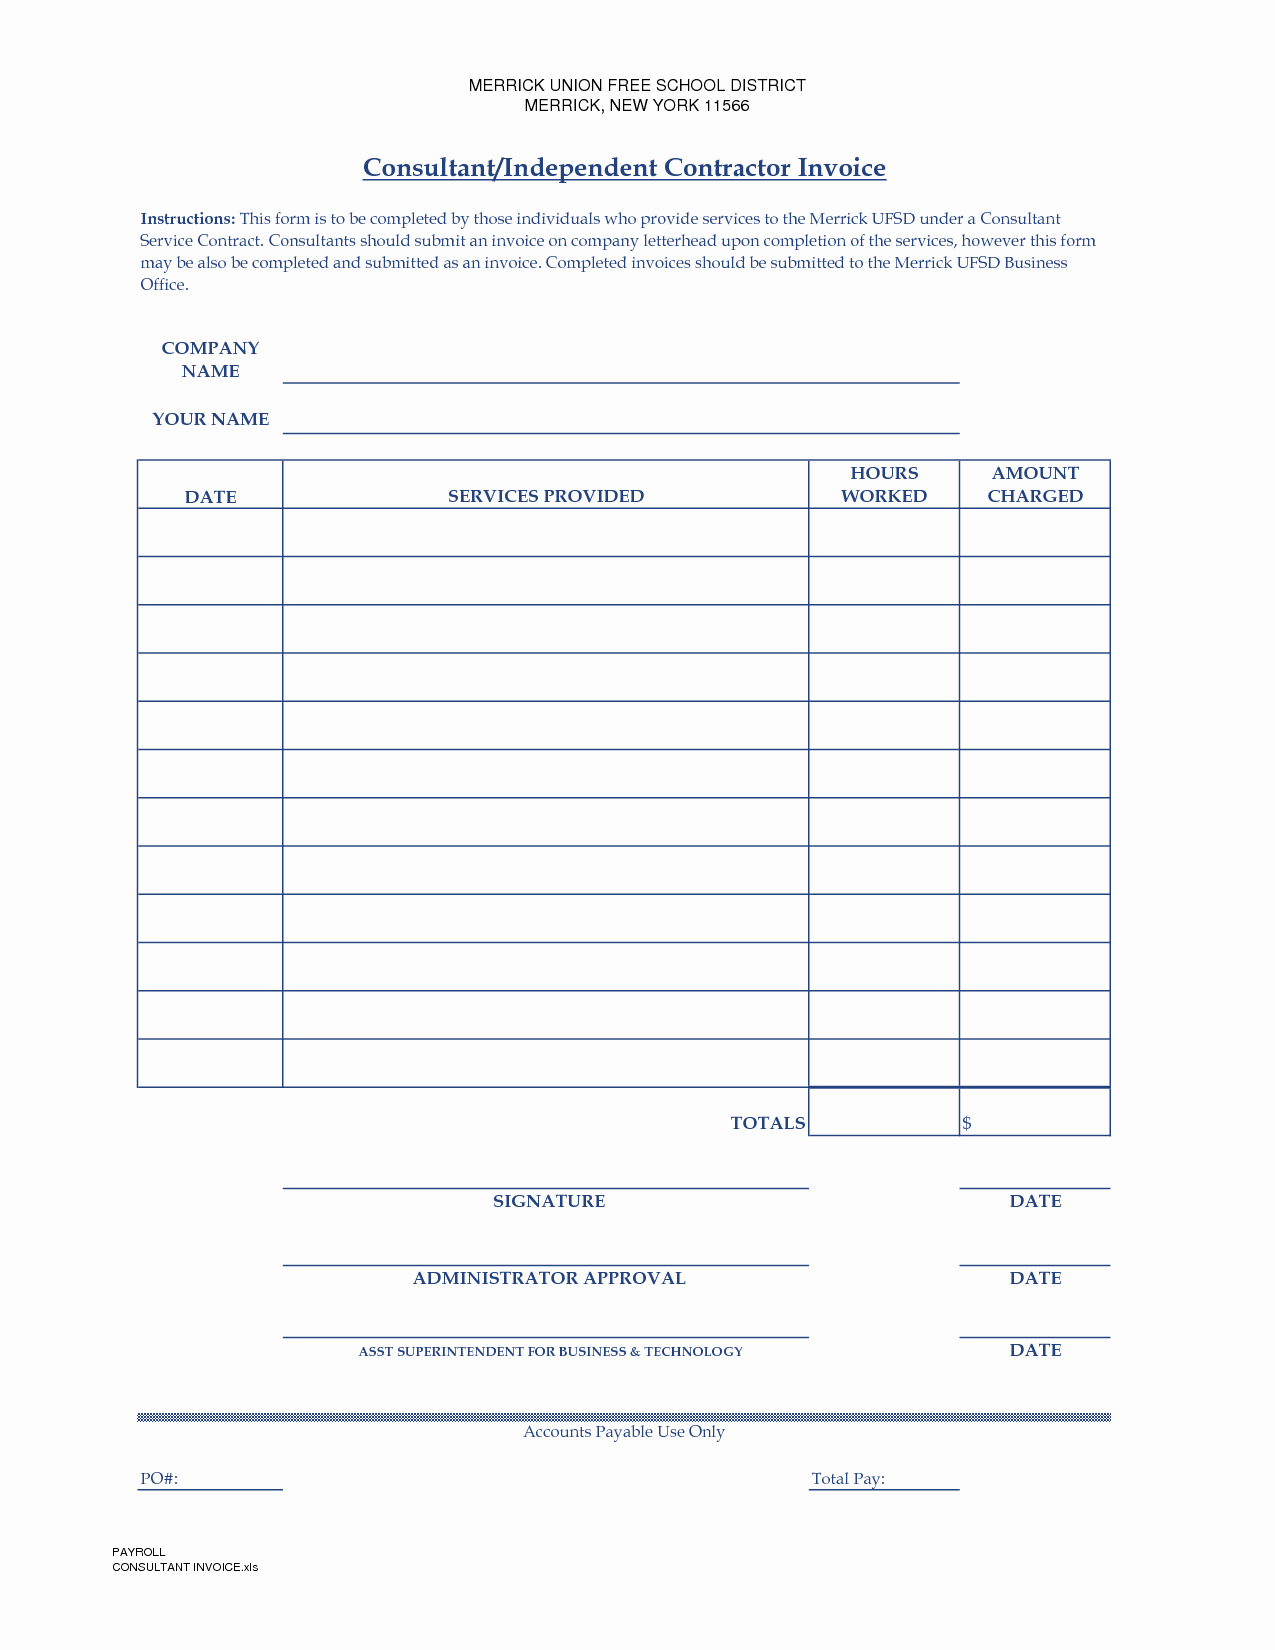 Contractor Invoice Template Free Inspirational Independent Contractor Invoice Template Free